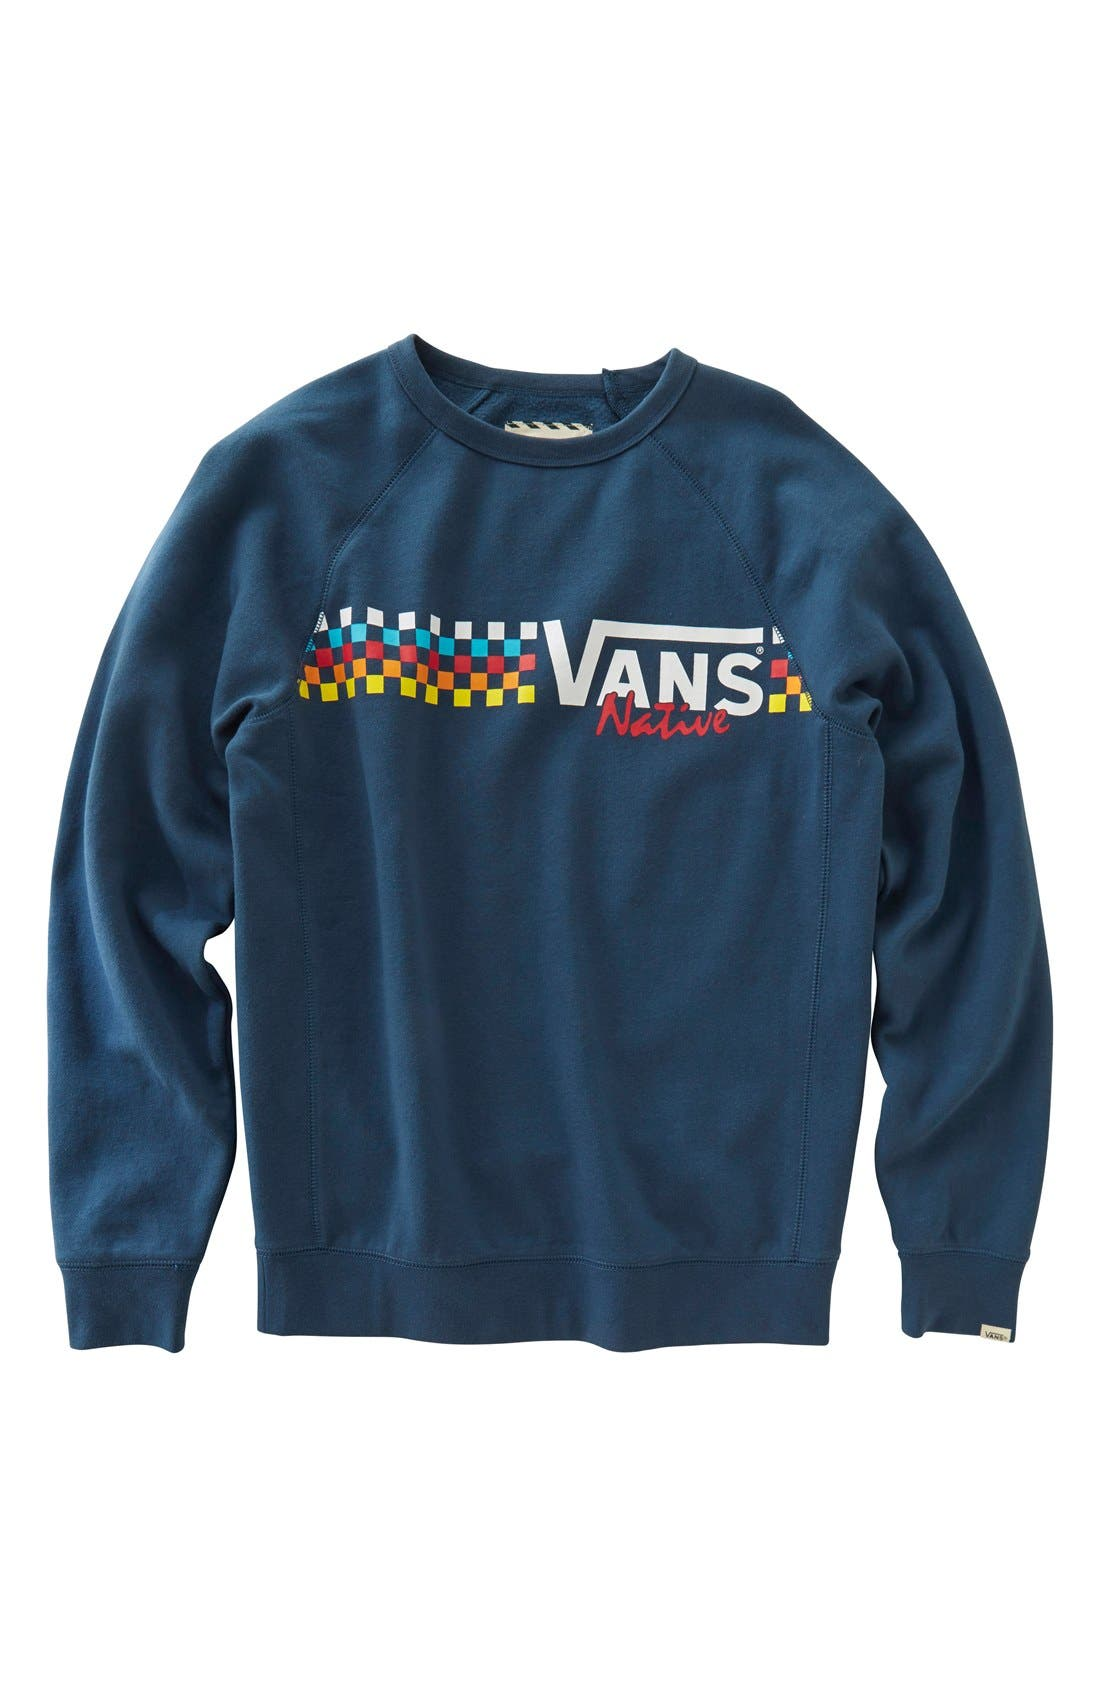 Alternate Image 1 Selected - Vans 'New Native' Screenprint Sweatshirt (Big Boys)